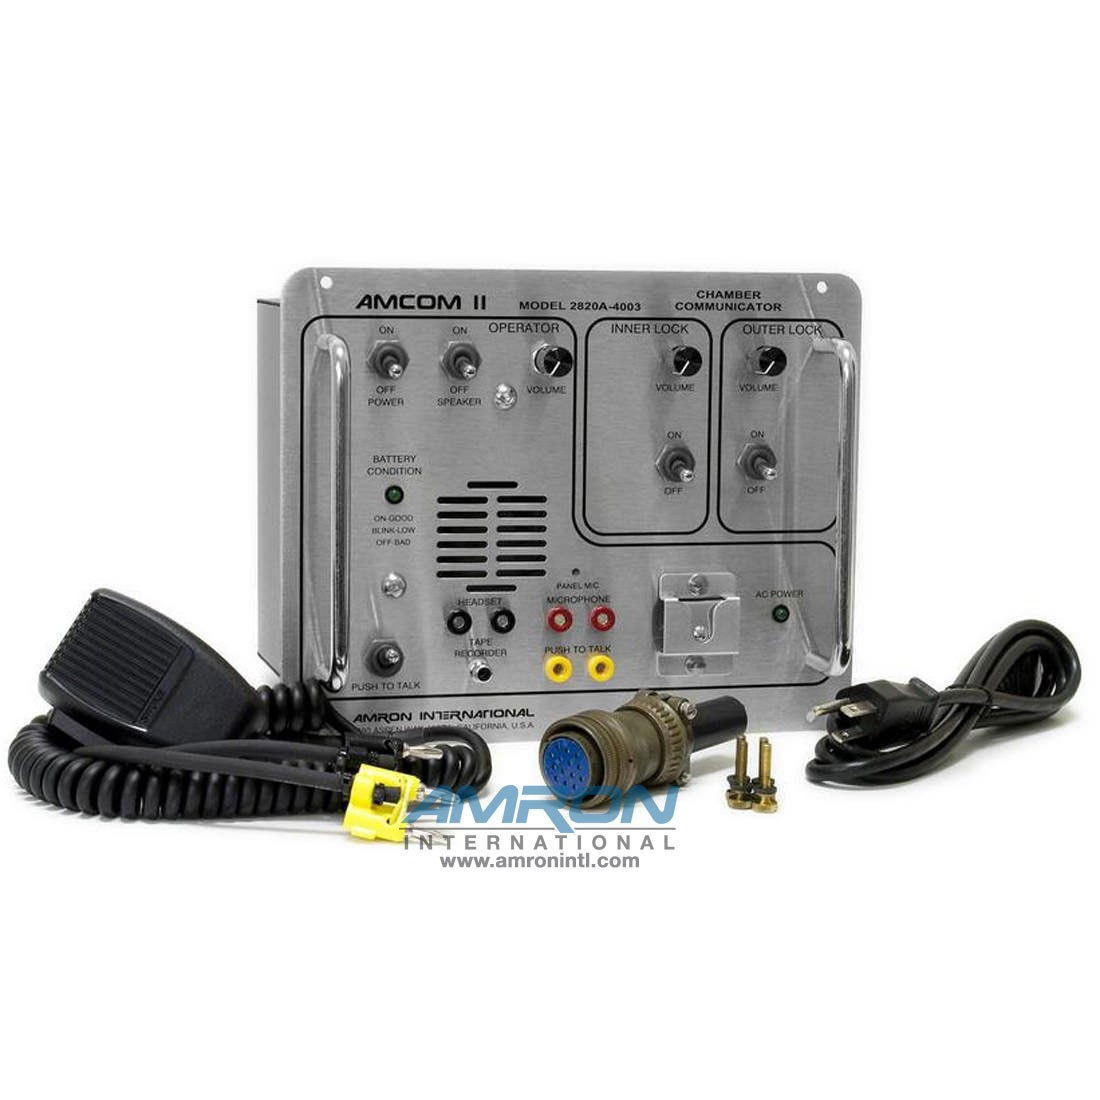 mron International Amcom II 2820A-4003 Double Lock Chamber Communicator